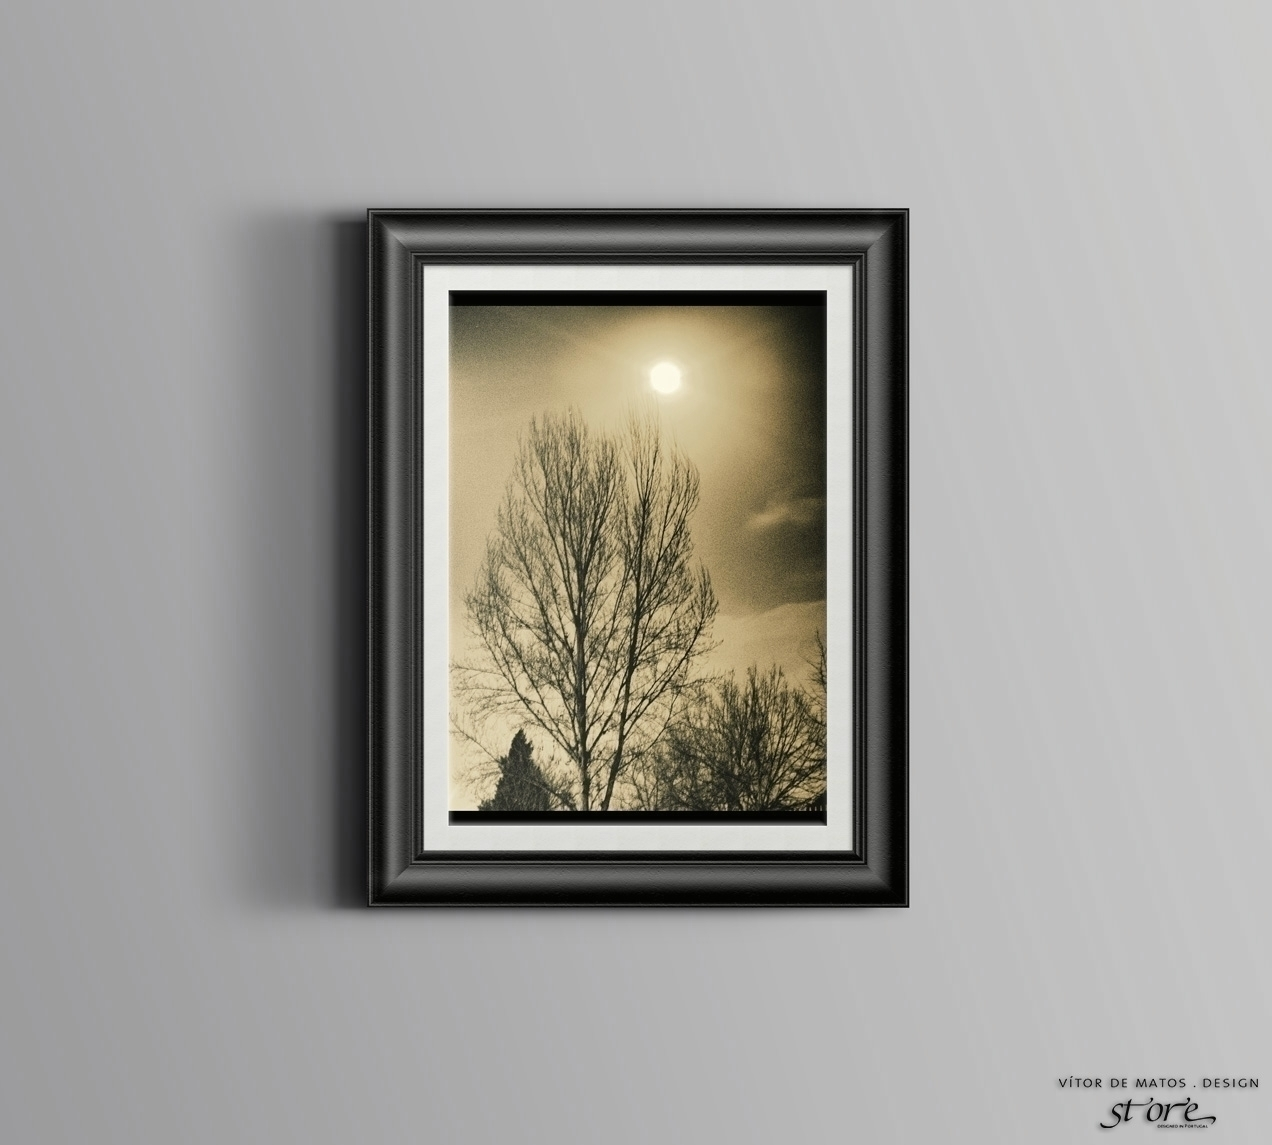 Lua Cheia Full Moon A3 Poster A3 Photographic Poster Print | Printed in gloss couché 135g ❜ by Vítor de Matos